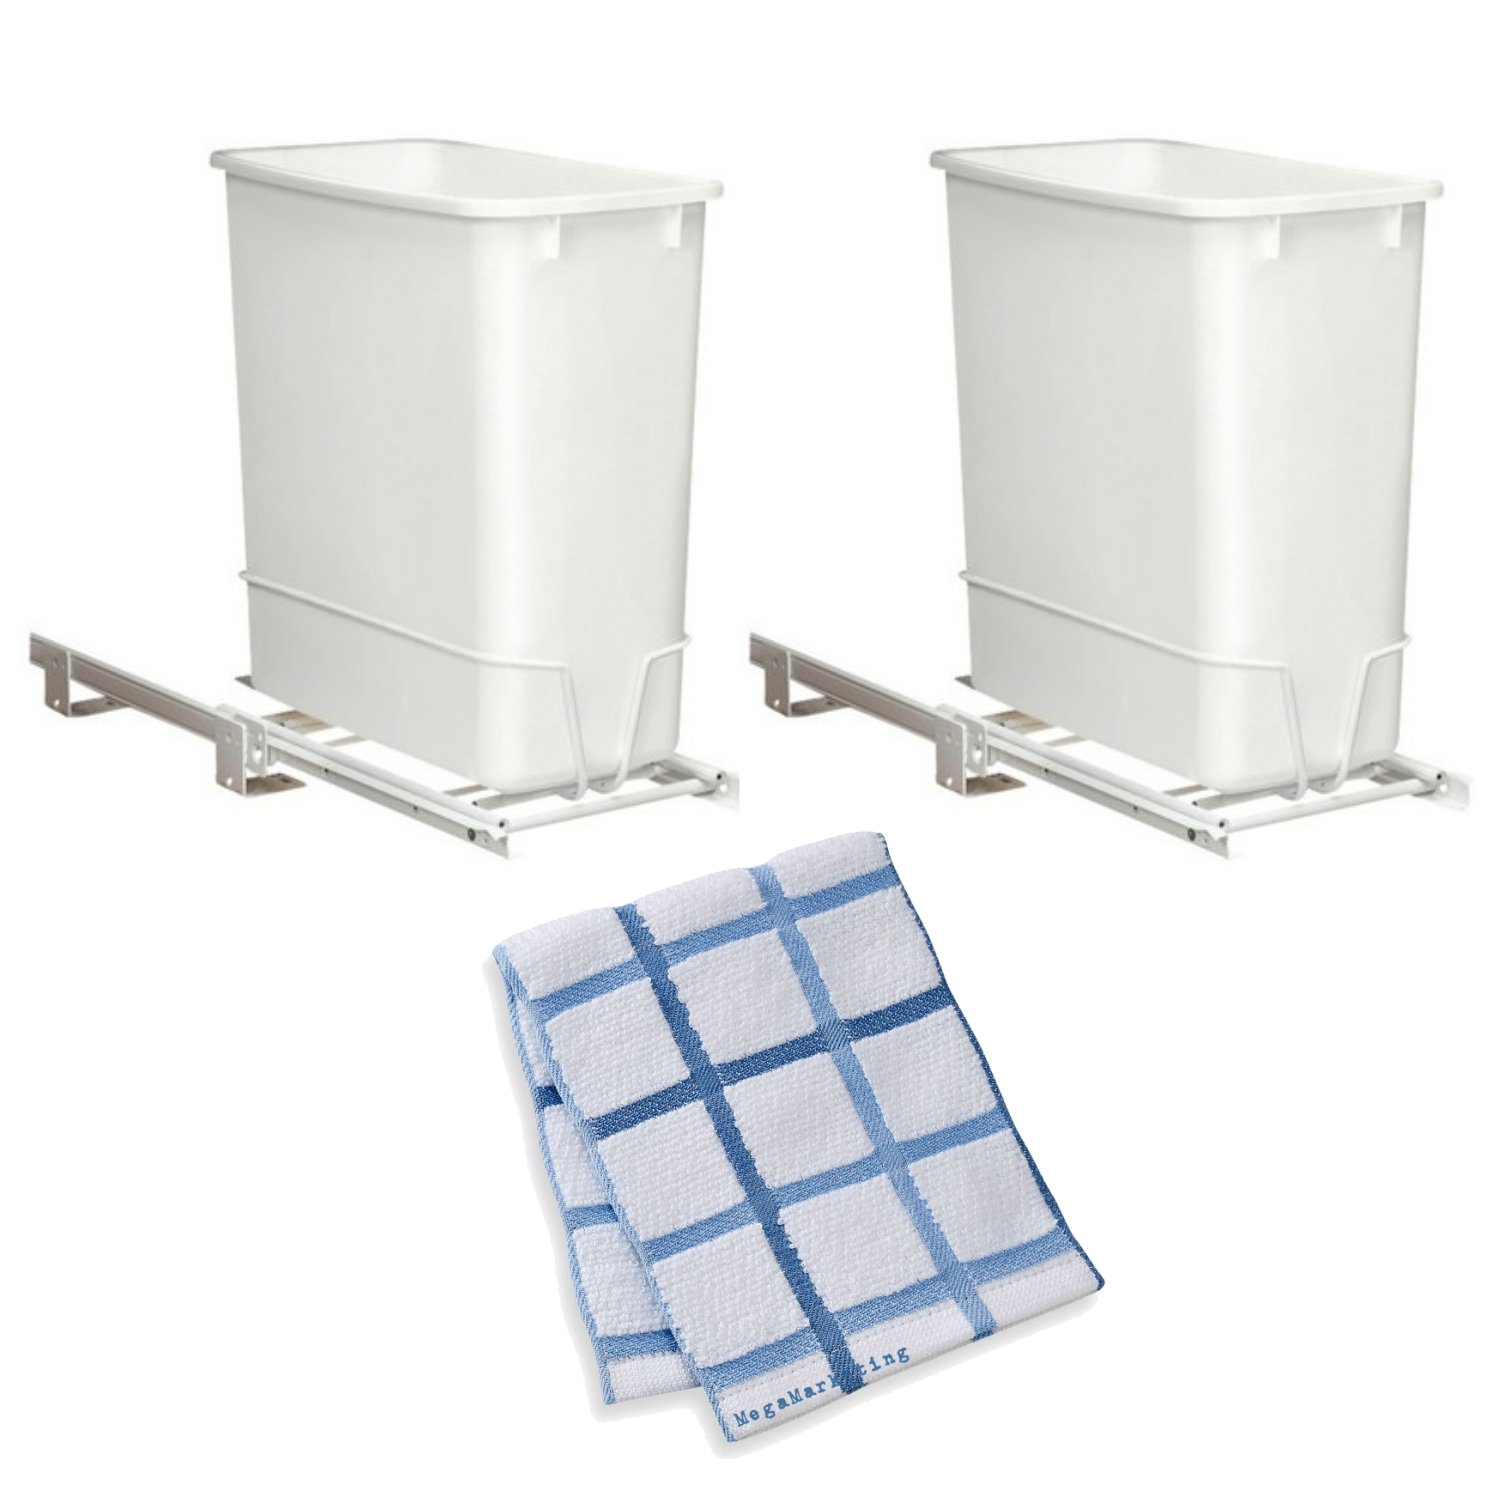 Rev-A-Shelf - RV-814PB - Single 20 Qt. Pull-Out White Waste Container with Adjustable Frame, 2-Pack with Kitchen Dish Cloth